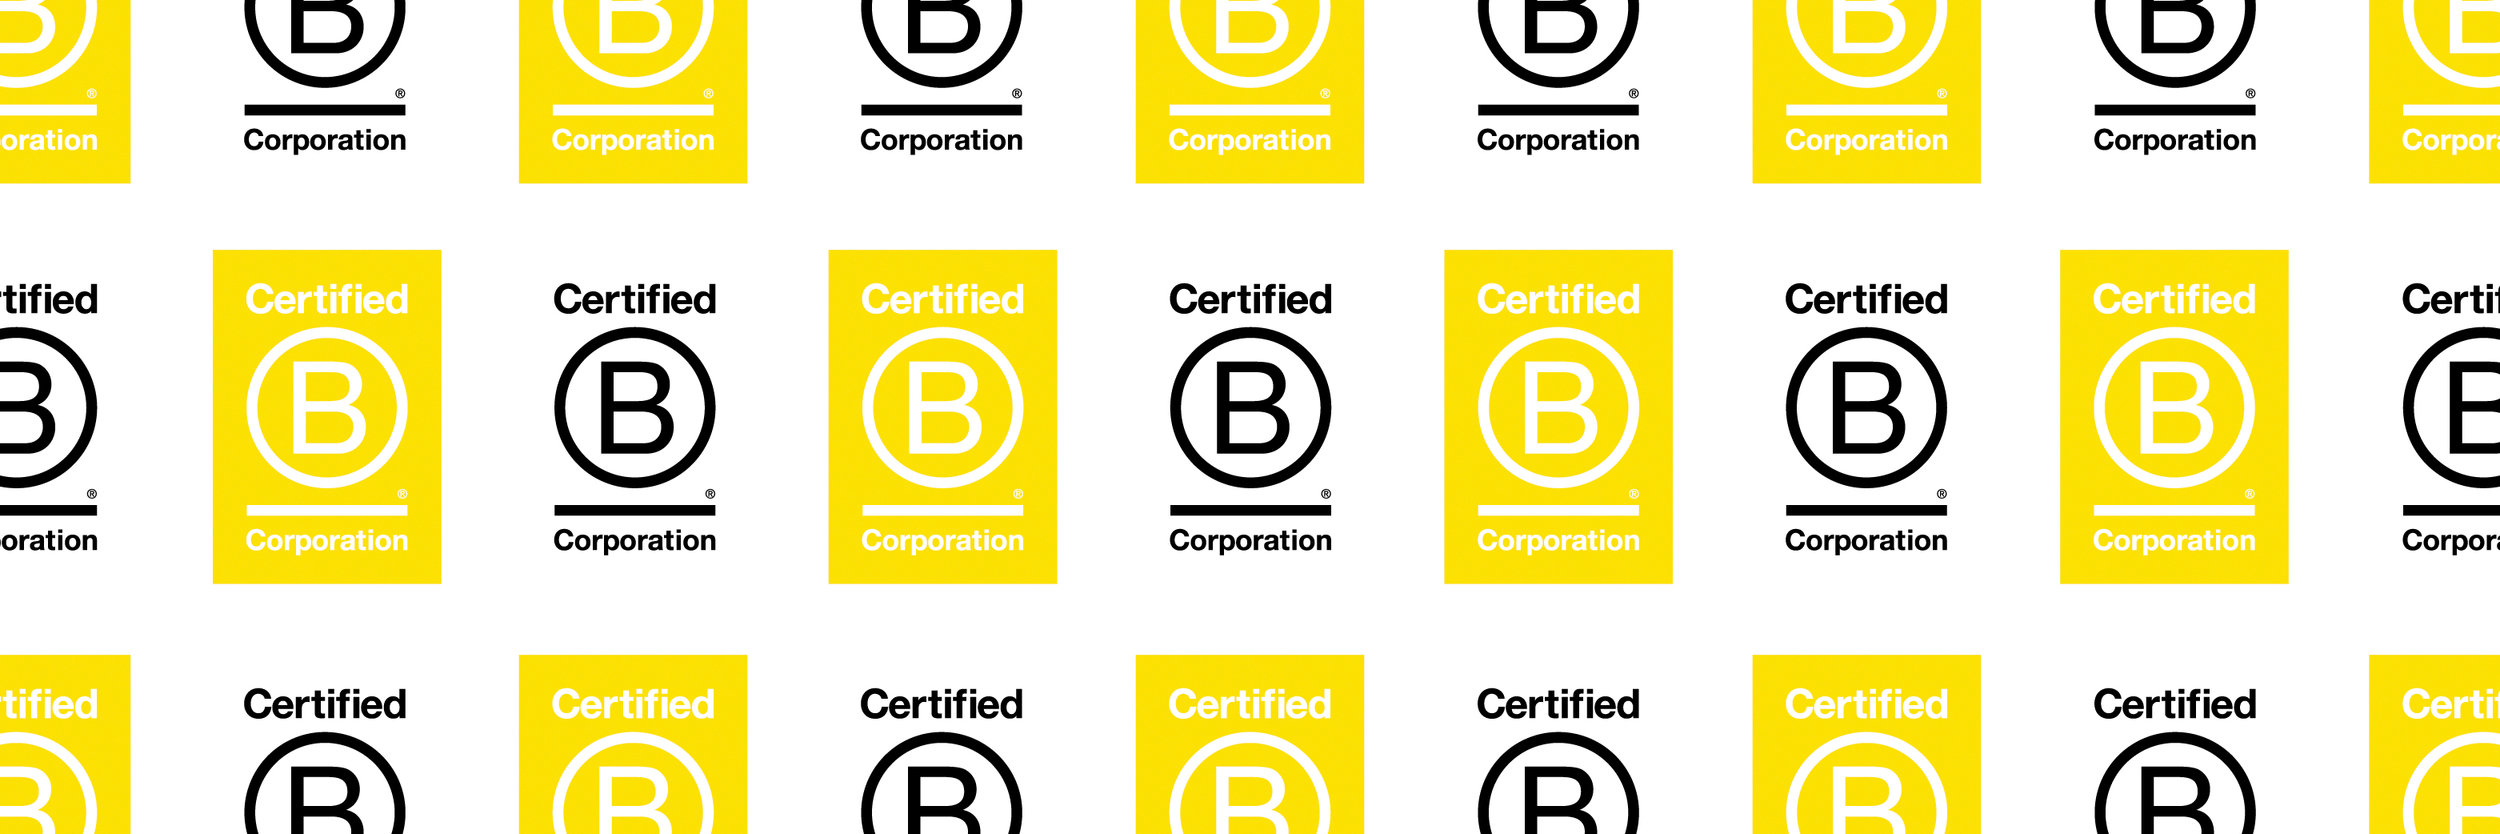 Good Stuff Partners B Corp B Corporation